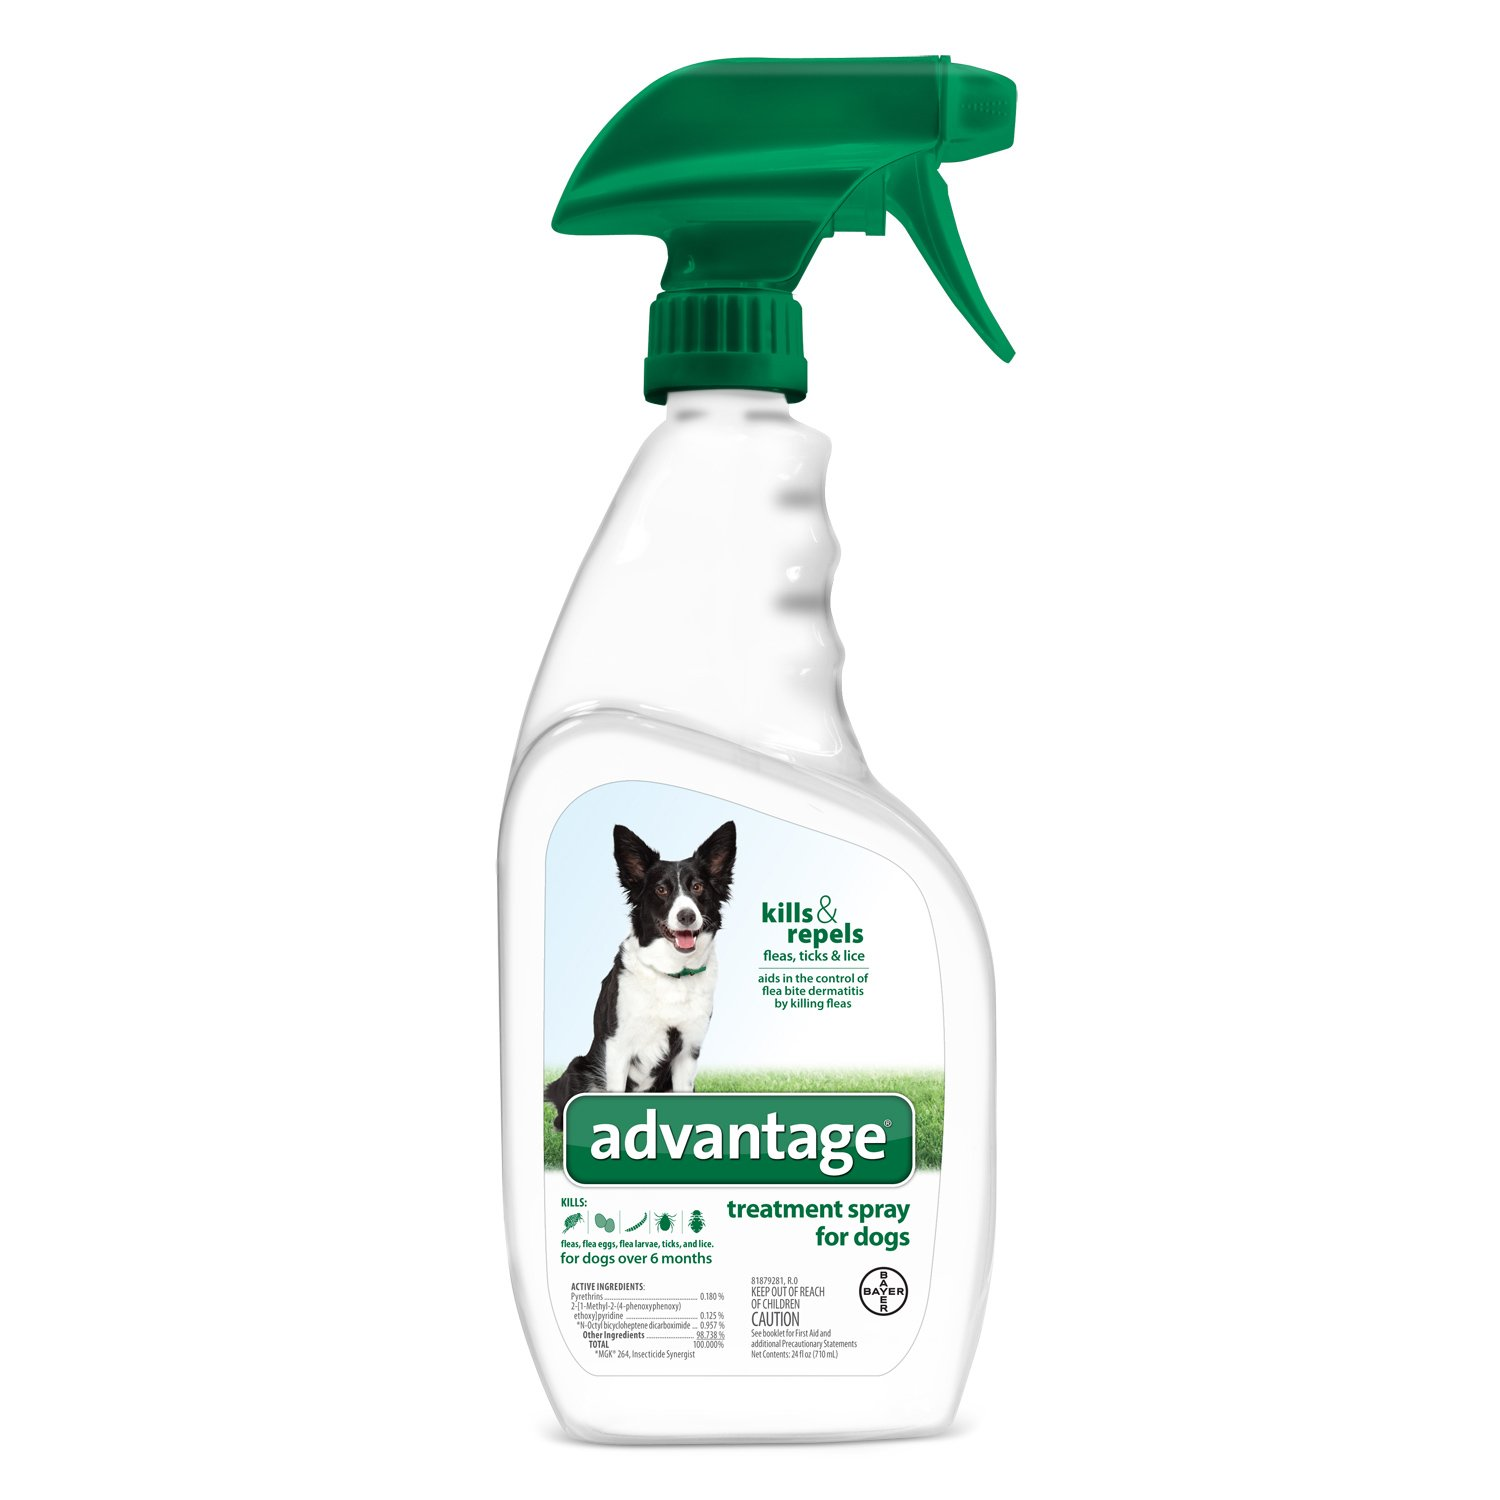 Flea and Tick Treatment Spray for Dogs, 24 oz, Advantage by Bayer Animal Health